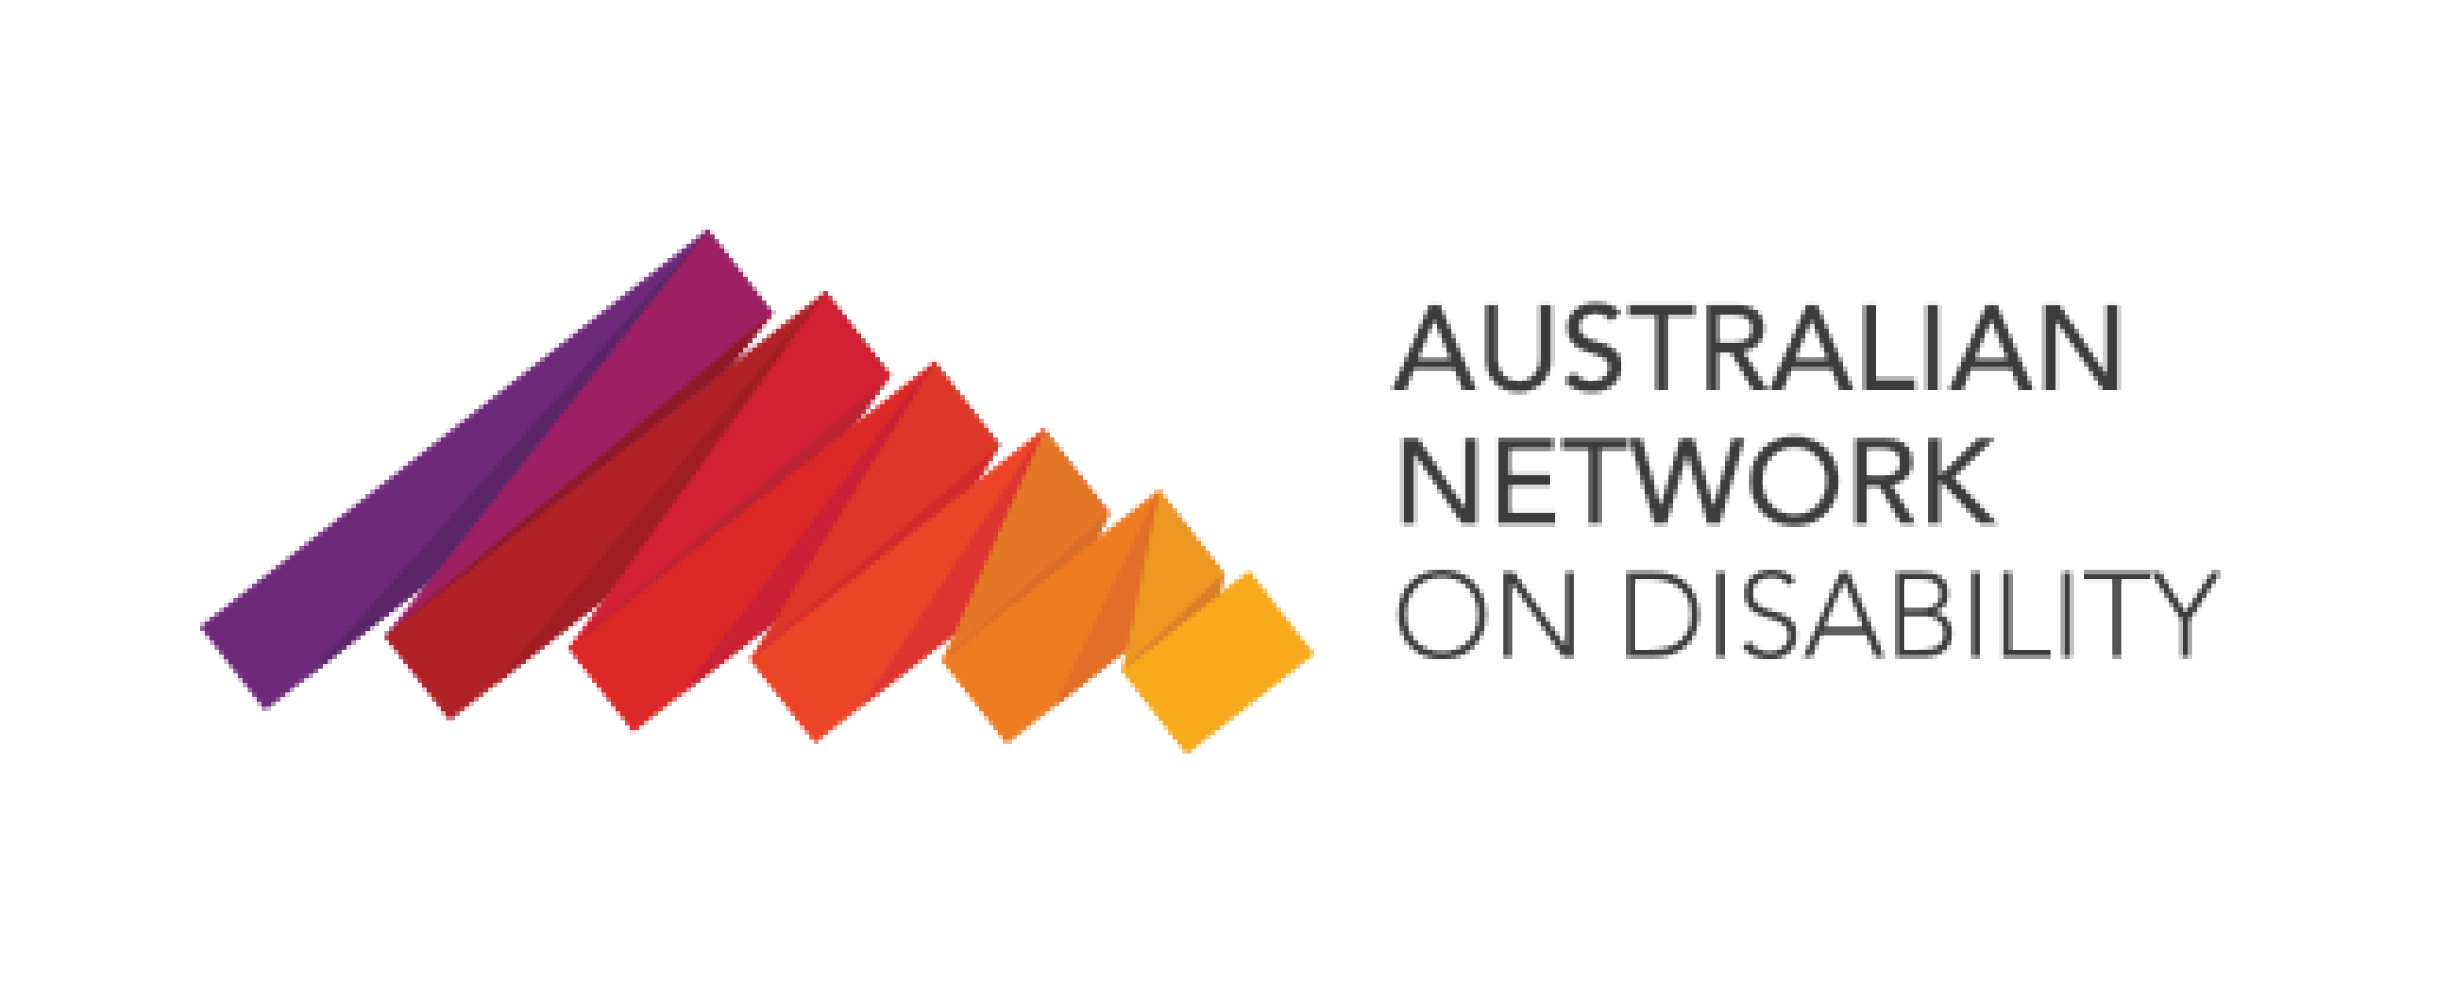 Australian Network on Disability (AND)